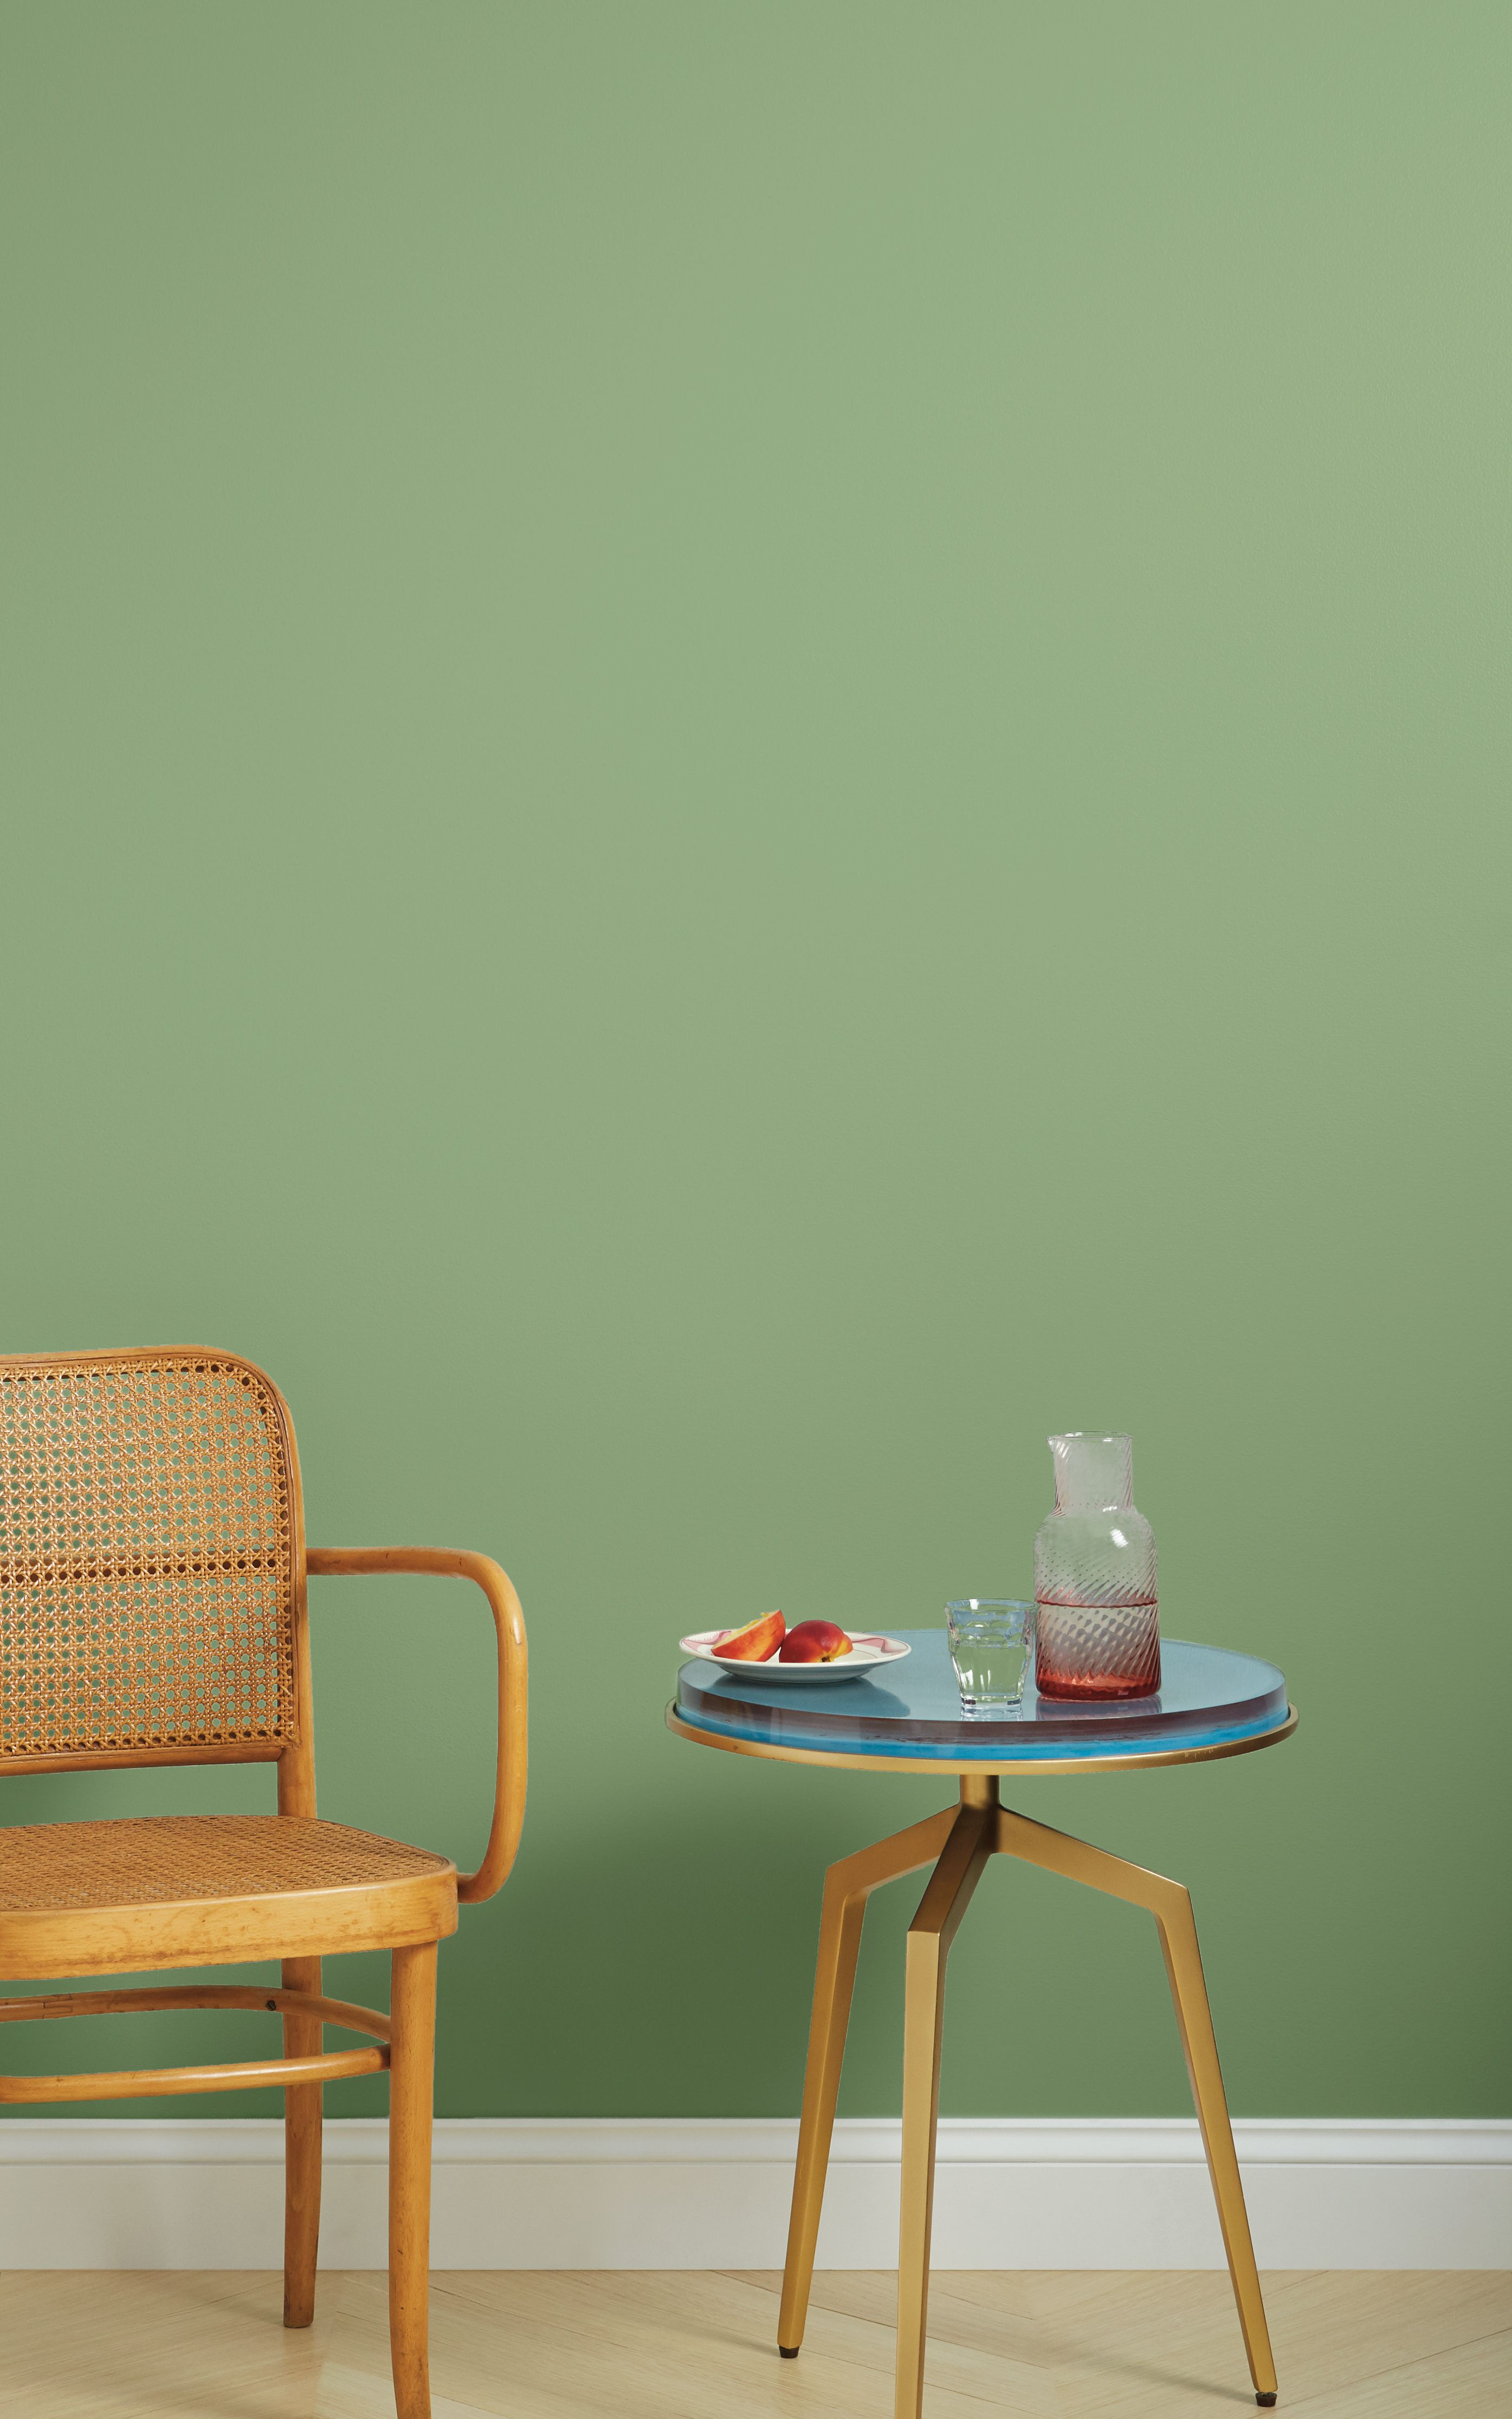 Avocado Toast Avocado Green Paint Color Clare In 2020 Paint Colors For Living Room Home Decor Interior